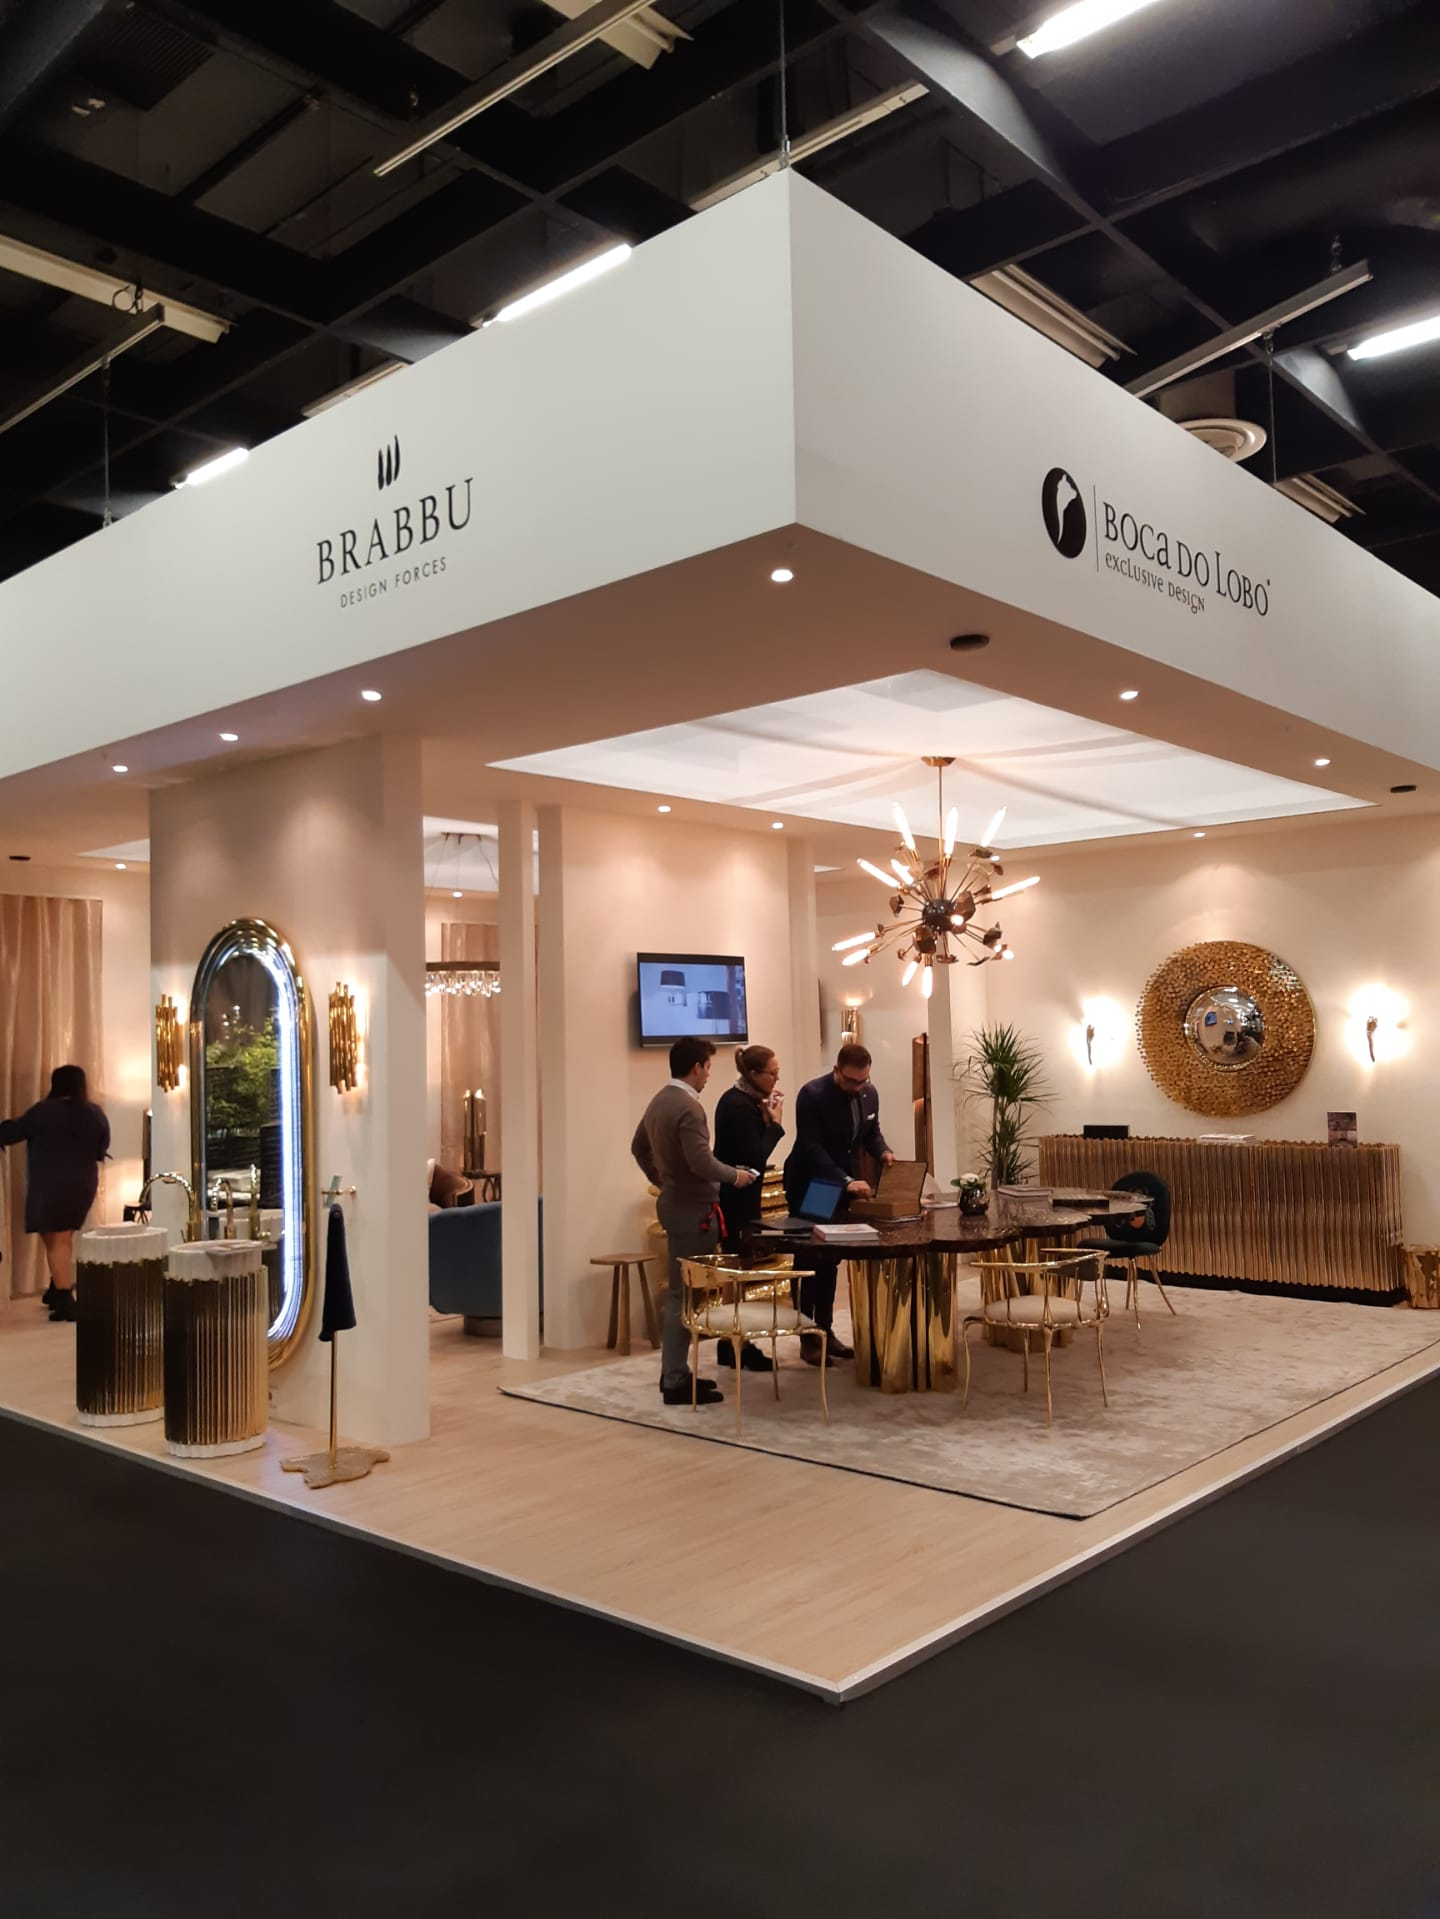 imm Cologne 2020: Take a Look at BRABBU's Stand